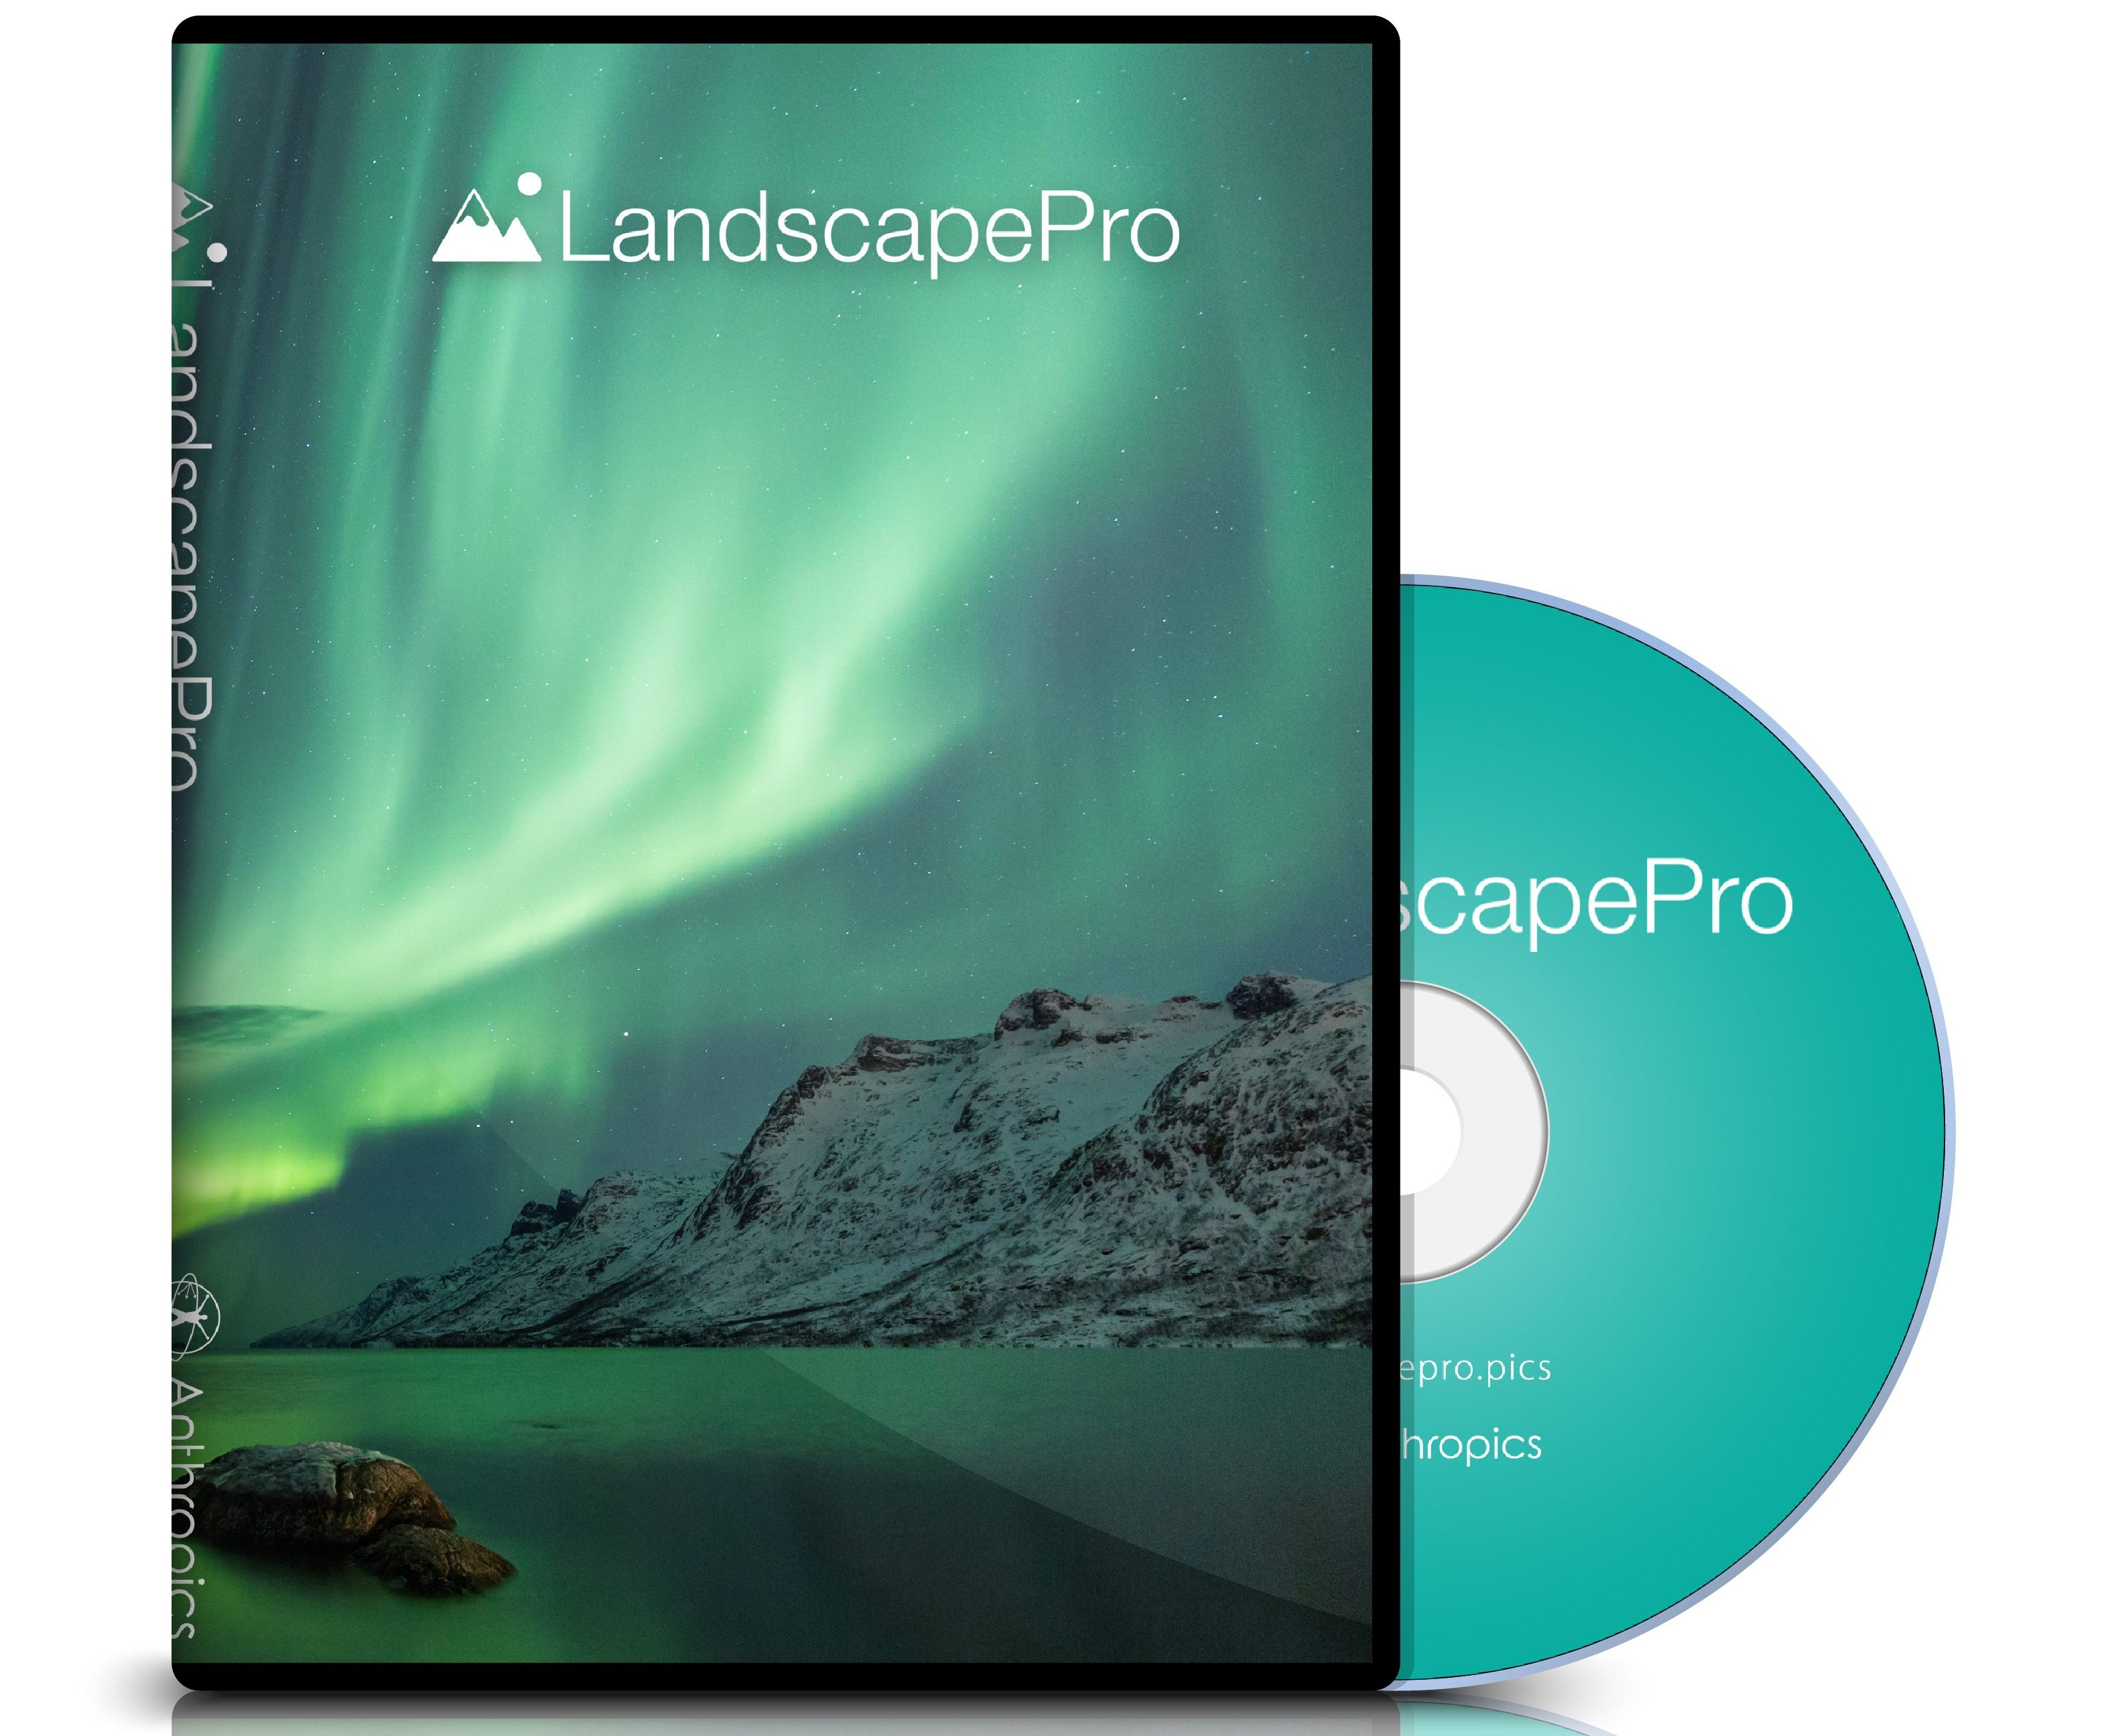 Anthropics LandscapePro review